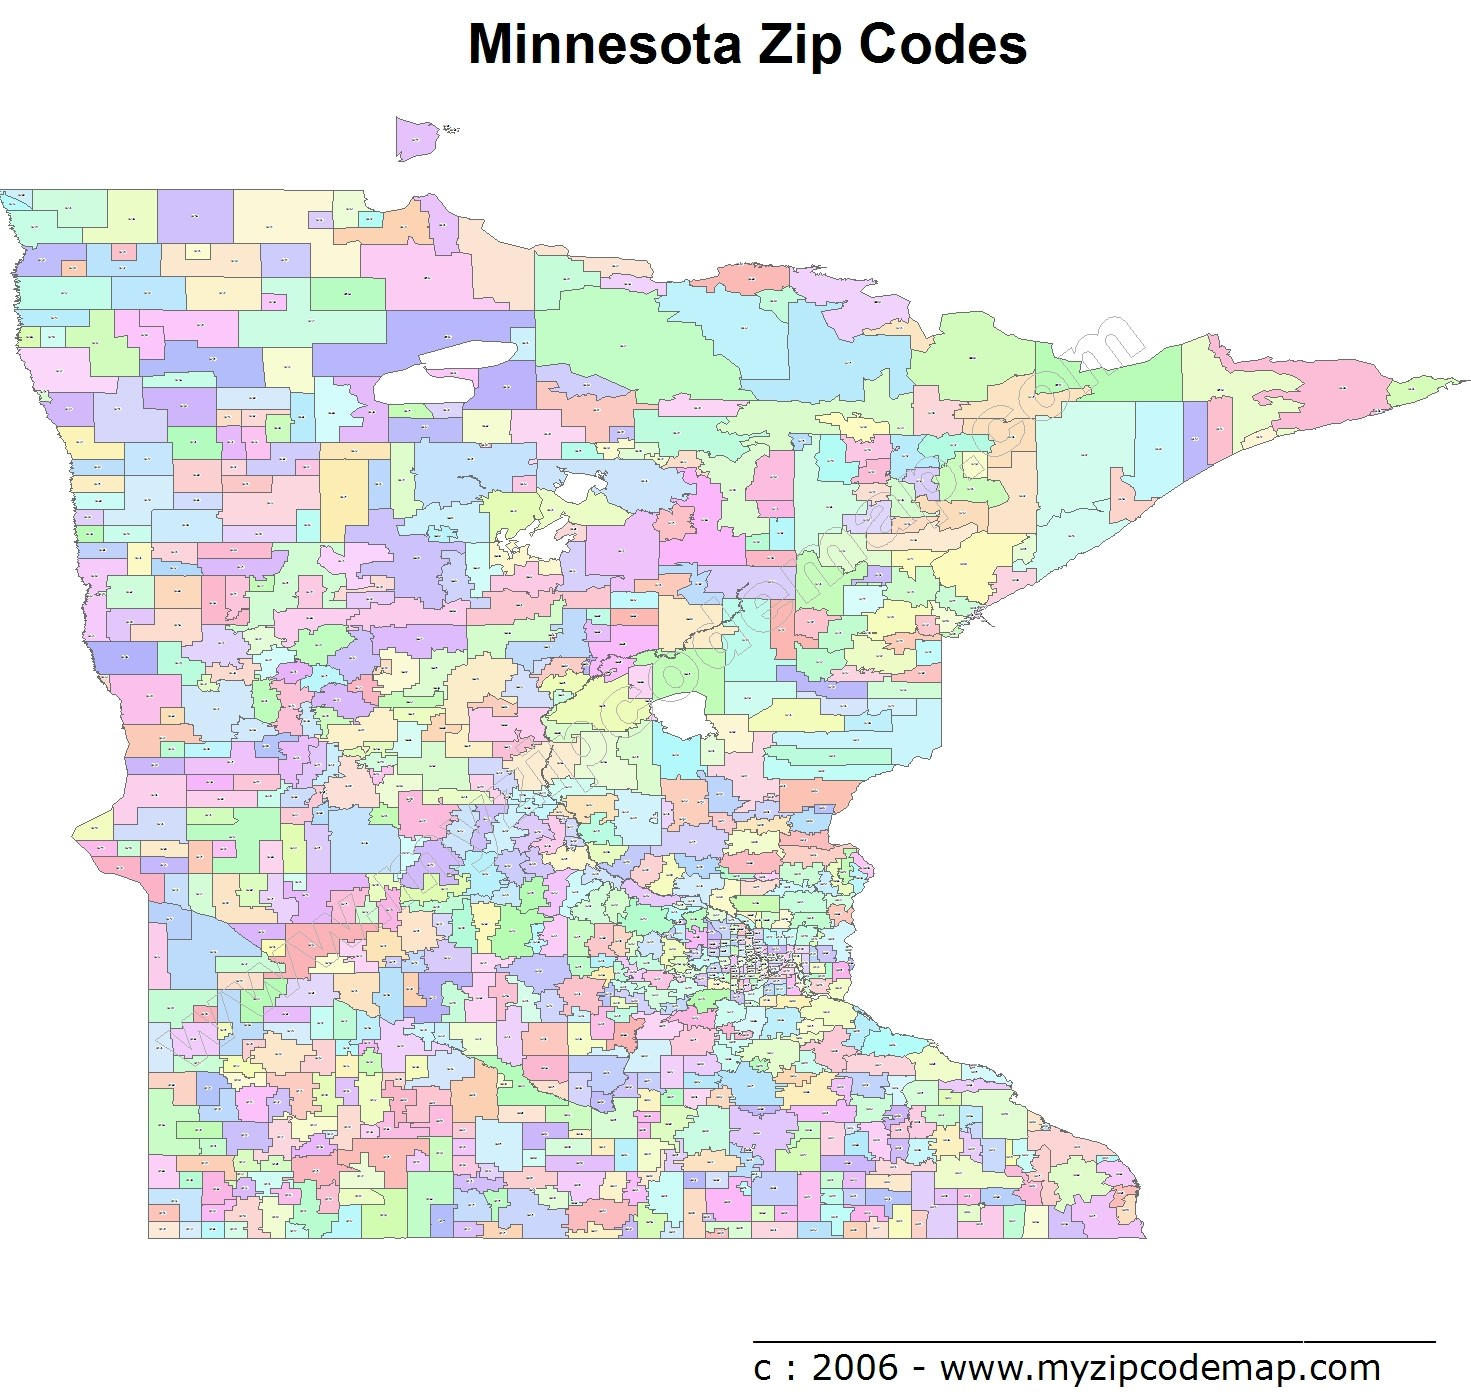 Minnesota Zip Code Maps